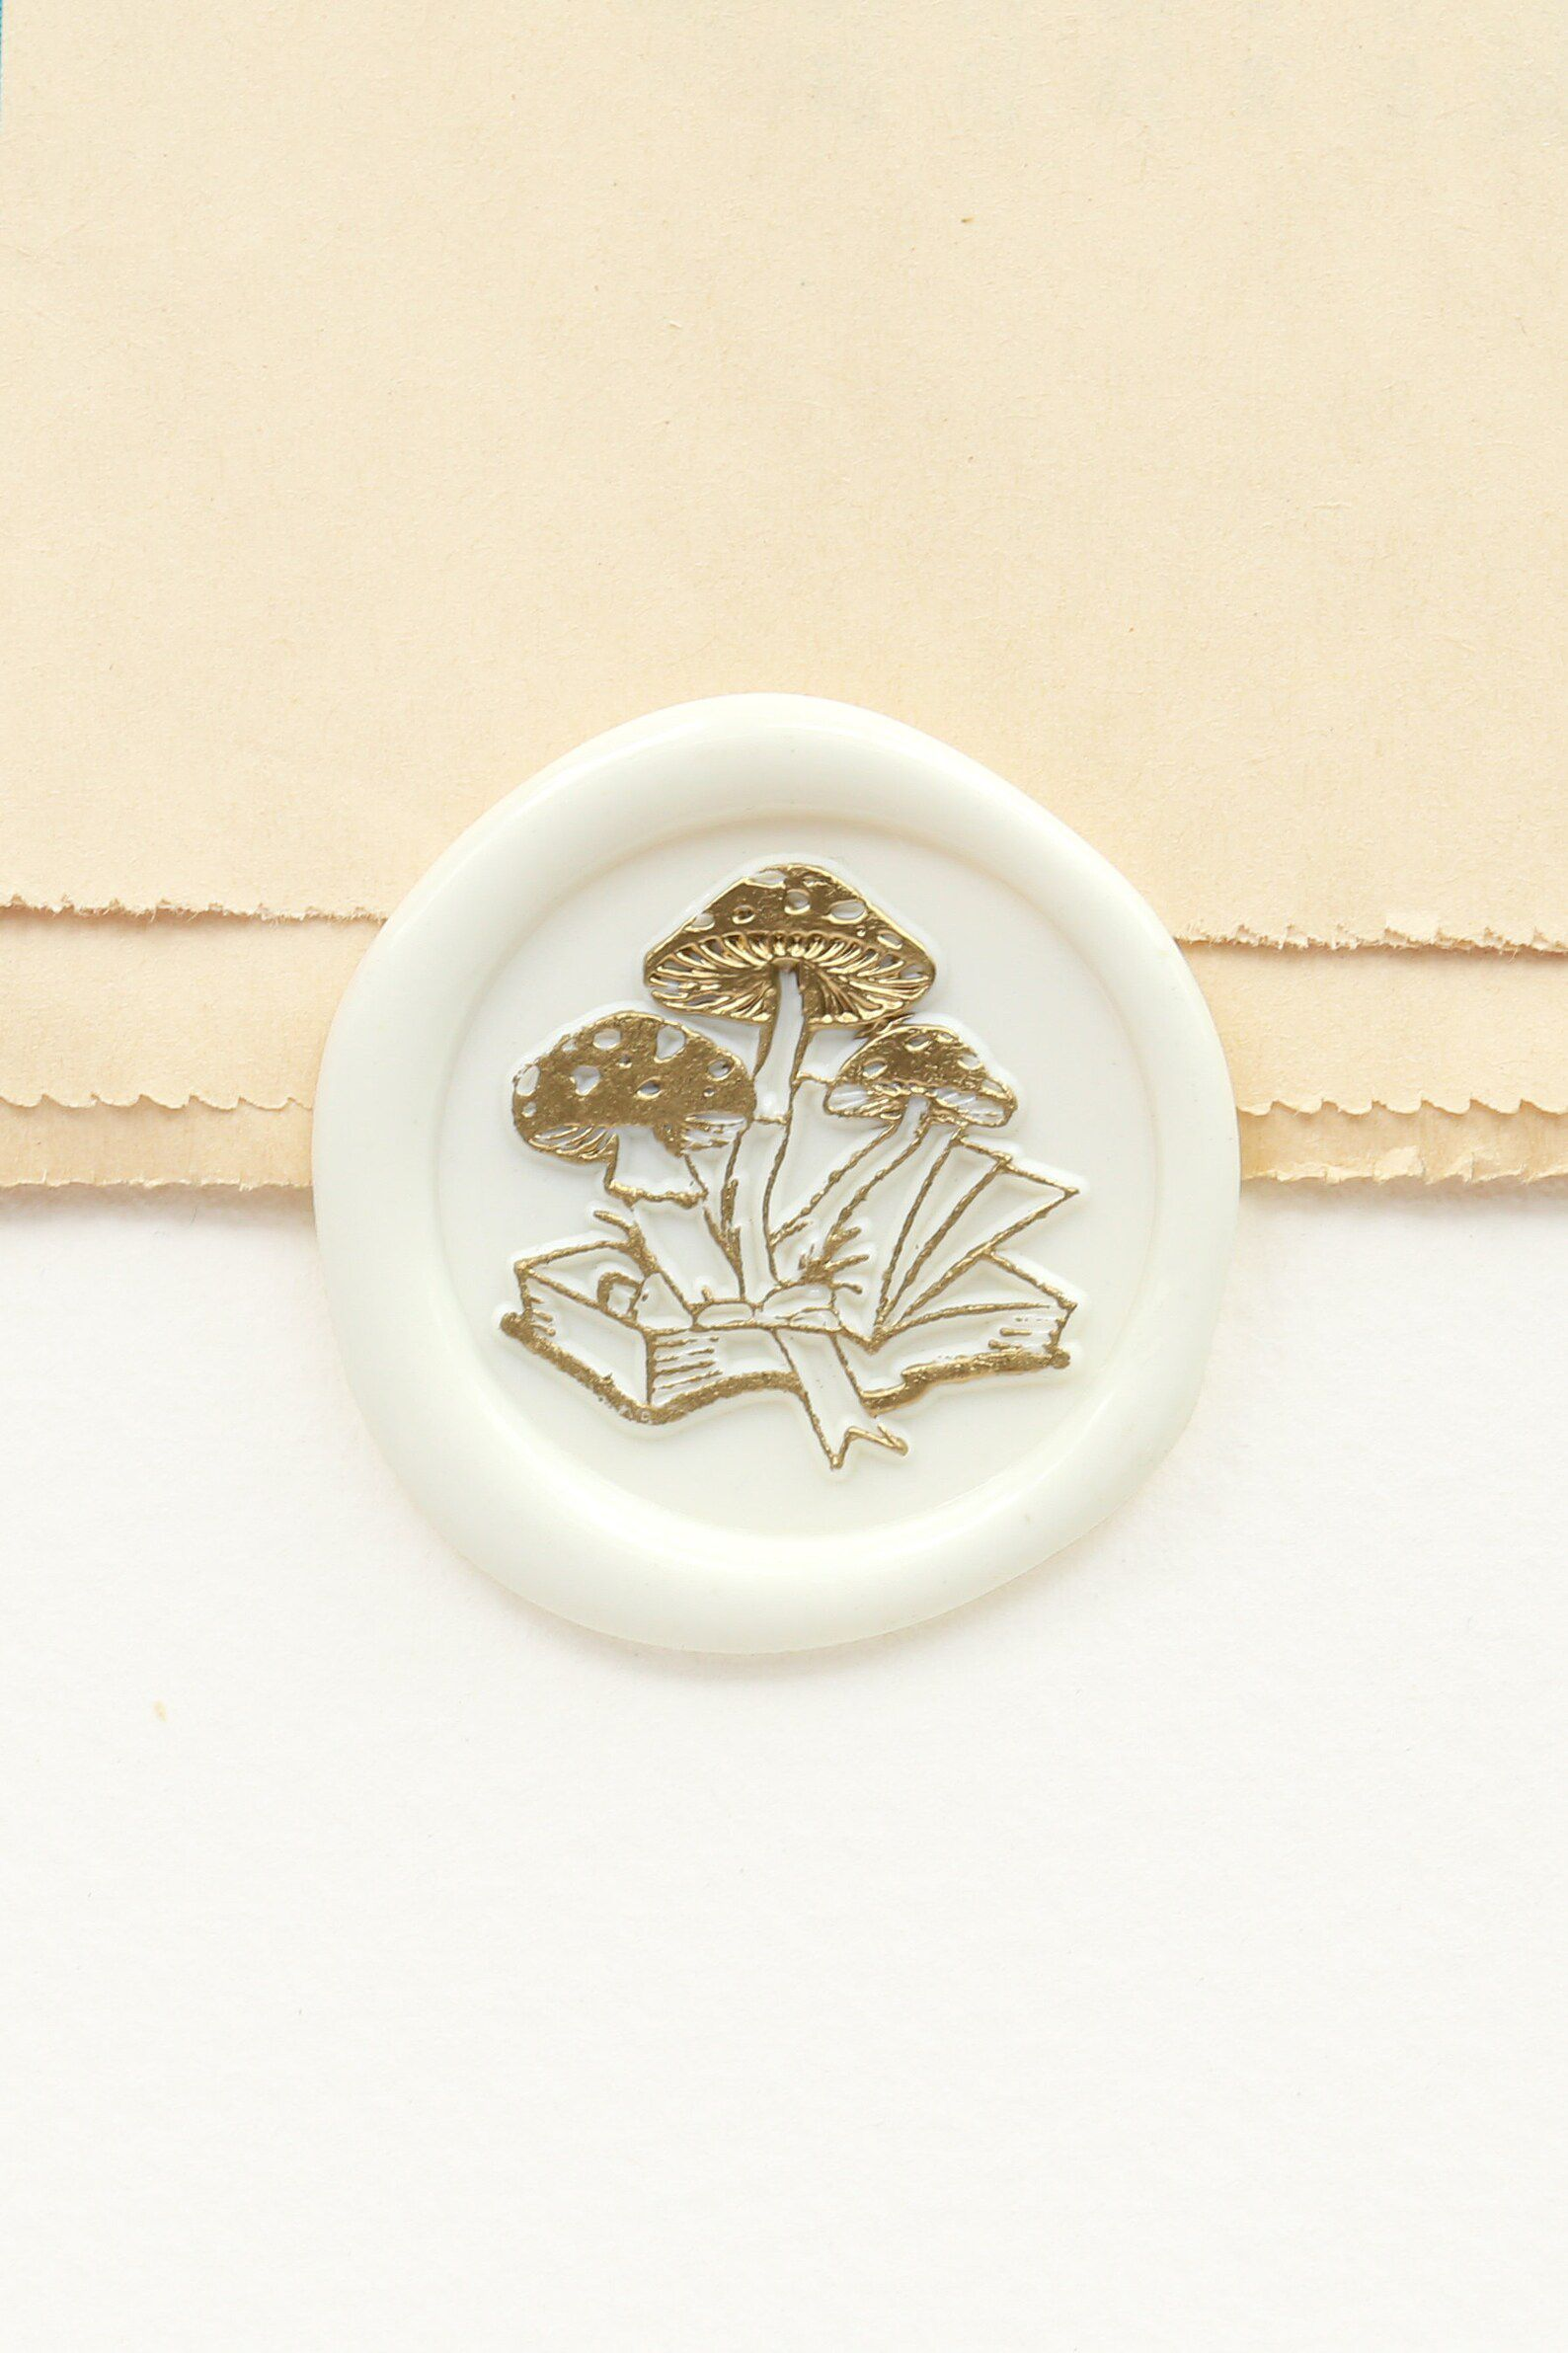 Image of white wax seal that includes a book and mushrooms.